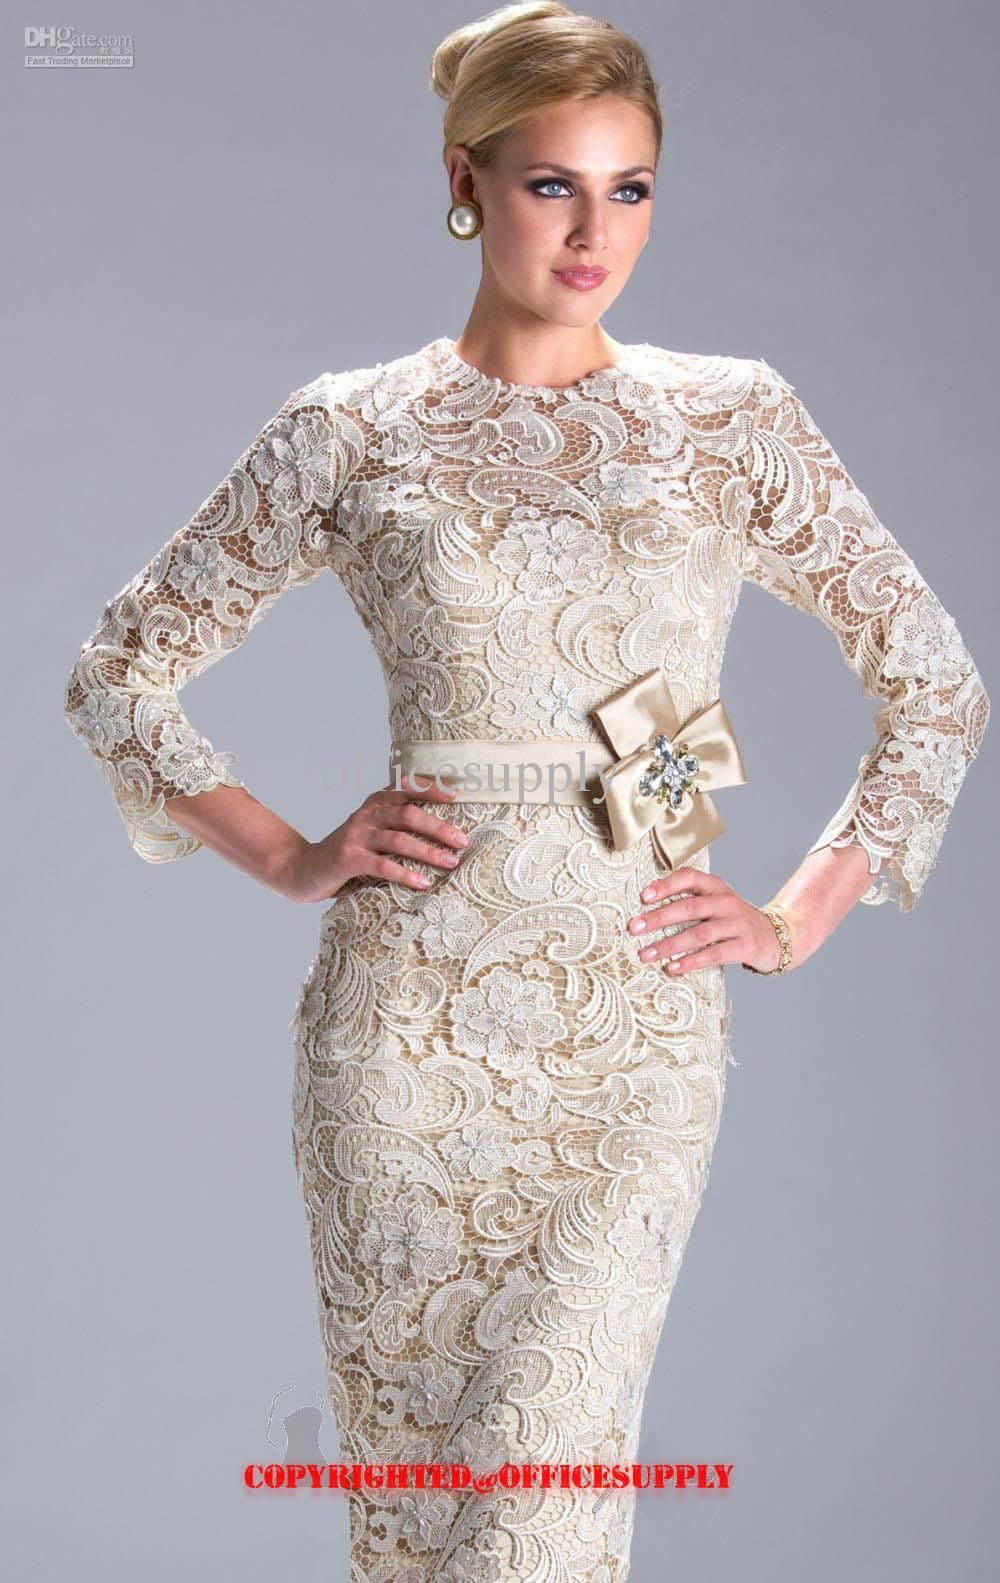 Wholesale Champagne Long Sleeved Knee Length Lace Evening Dress Mother of the Bride Gown with Band N3396, Free shipping, $100.8-119.84/Piece   DHgate